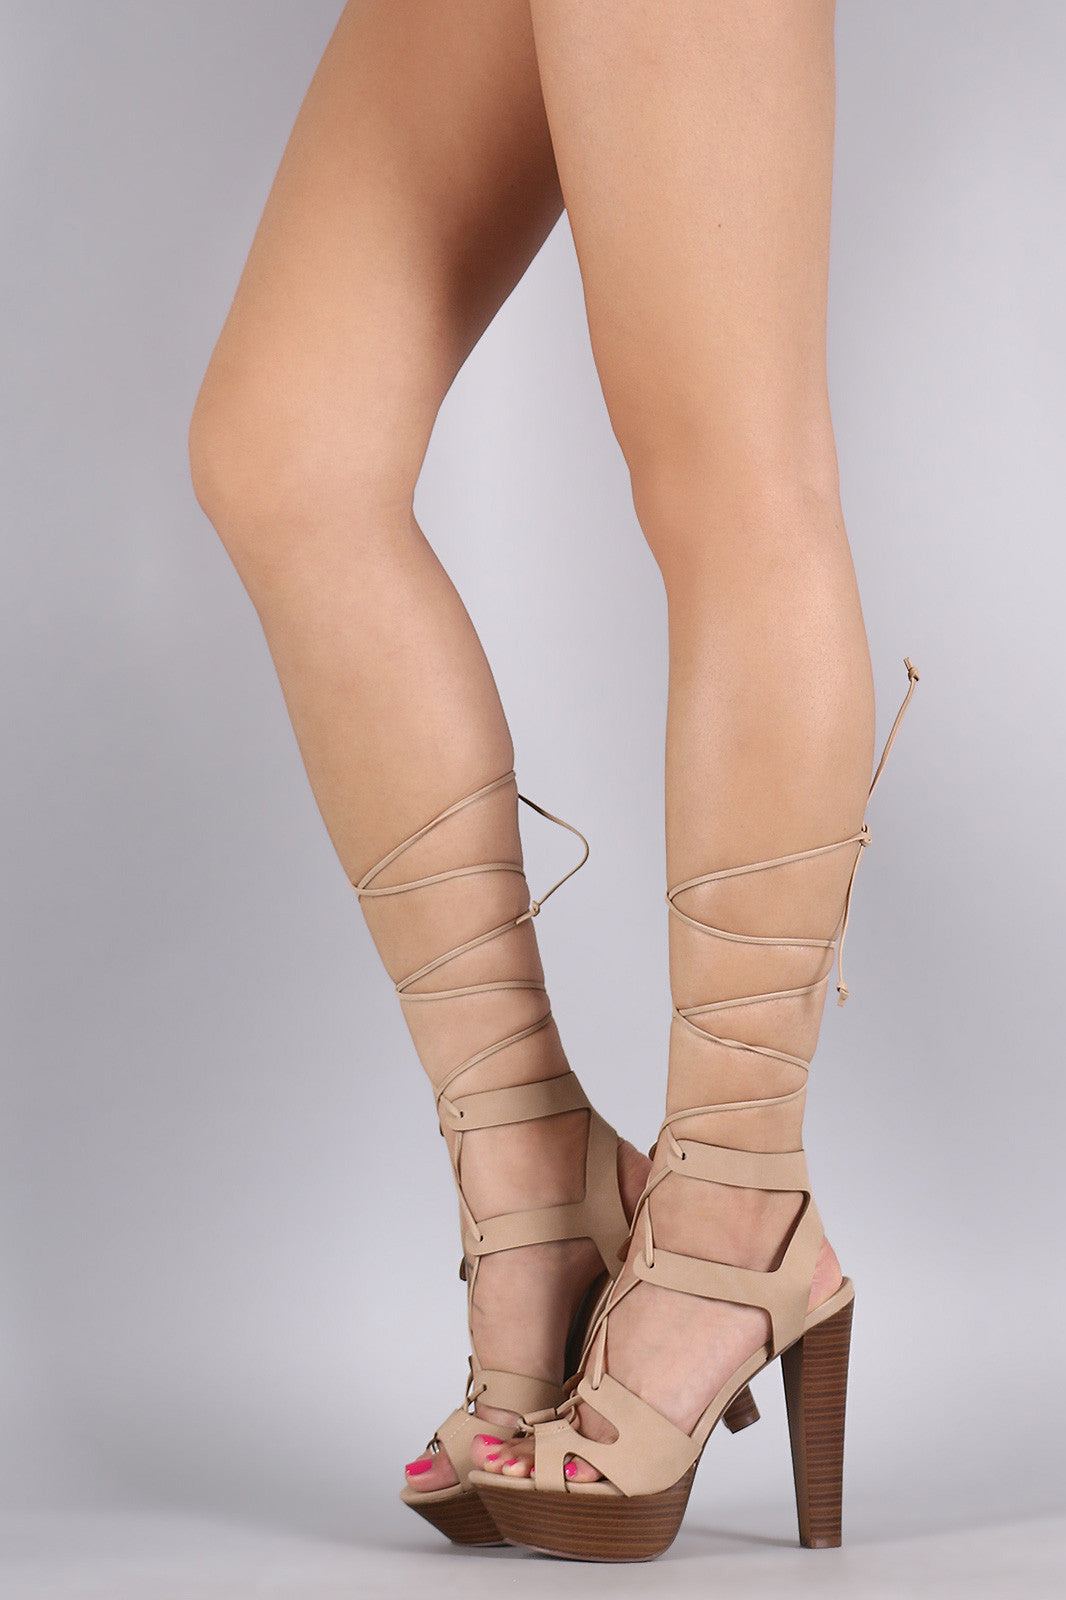 Breckelle Strappy Lace Up Platform Heel - Thick 'N' Curvy Shop - 2